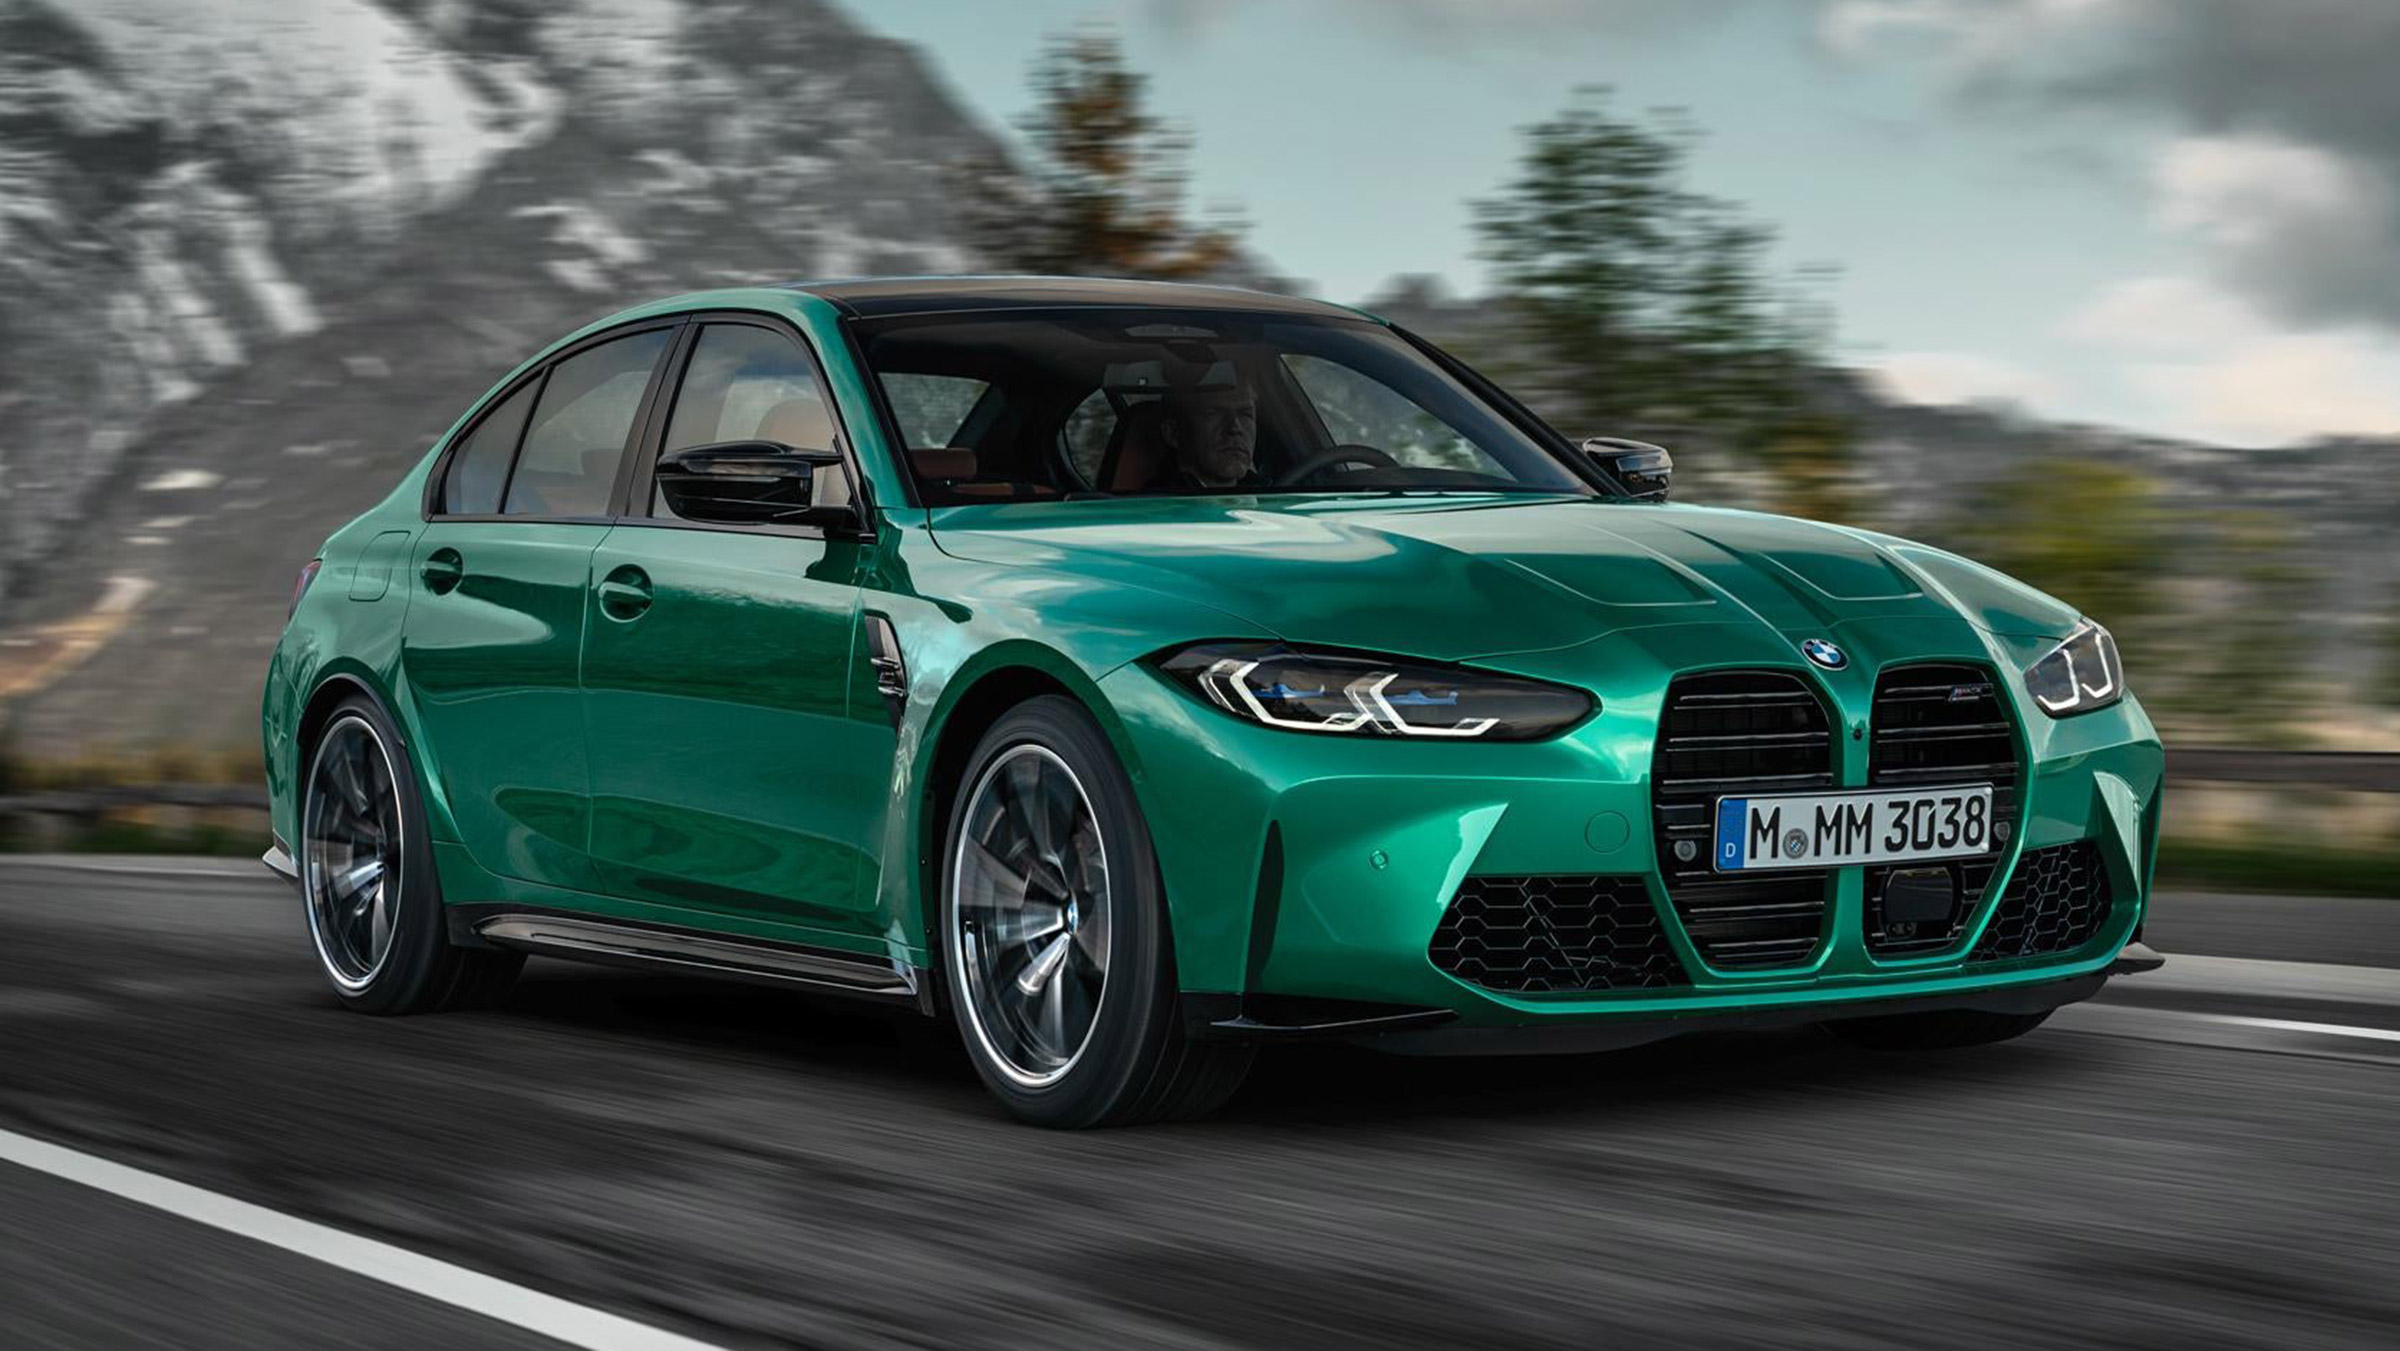 New 2020 BMW M3 leaked ahead of official launch   Auto Express